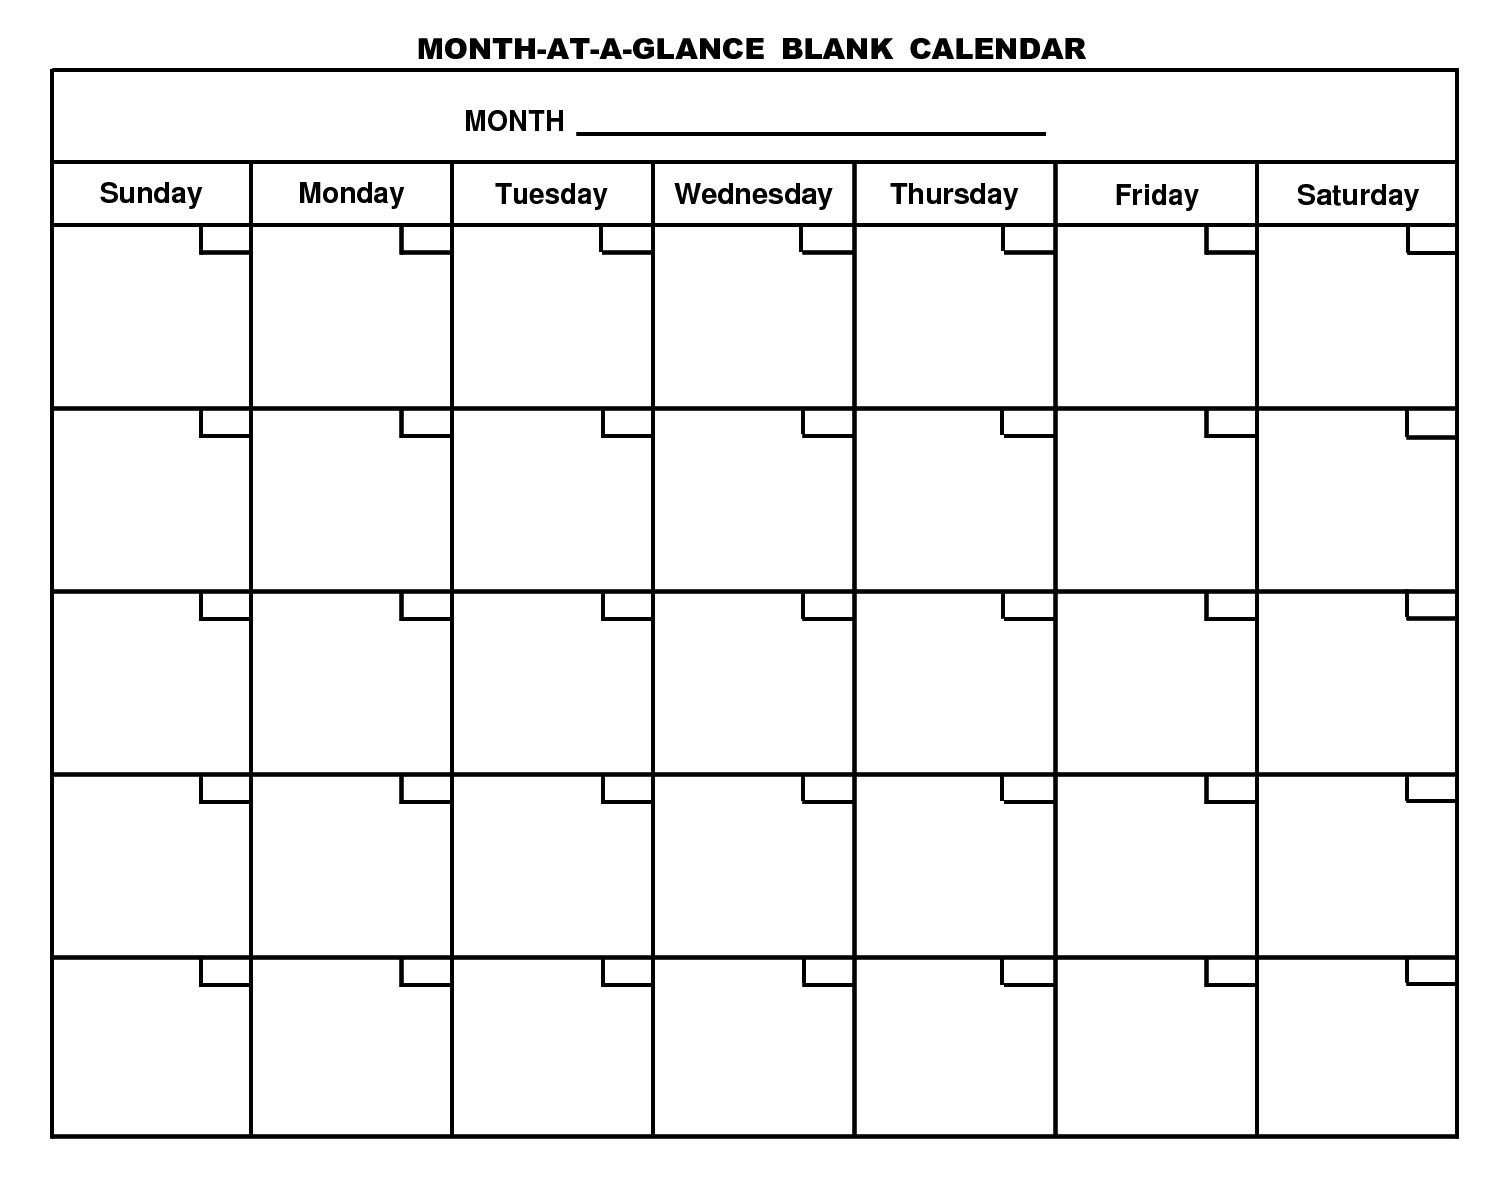 Blank Templates Archives - 10+ Professional Templates Ideas-Month At A Glance Blank Calendar Template